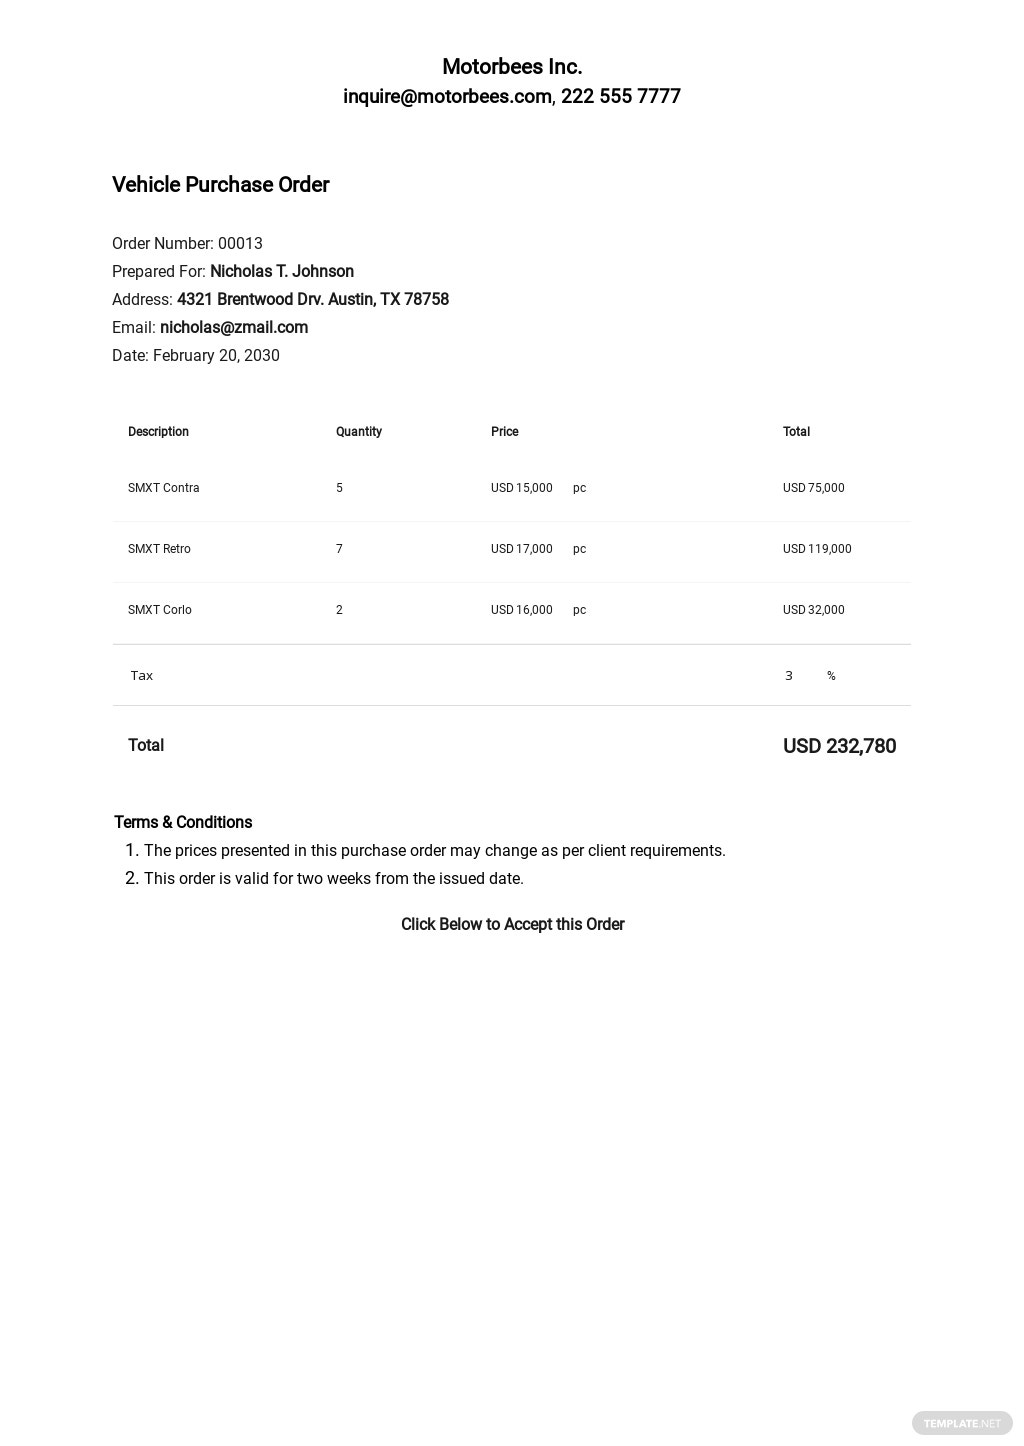 Free Vehicle Purchase Order Template.jpe